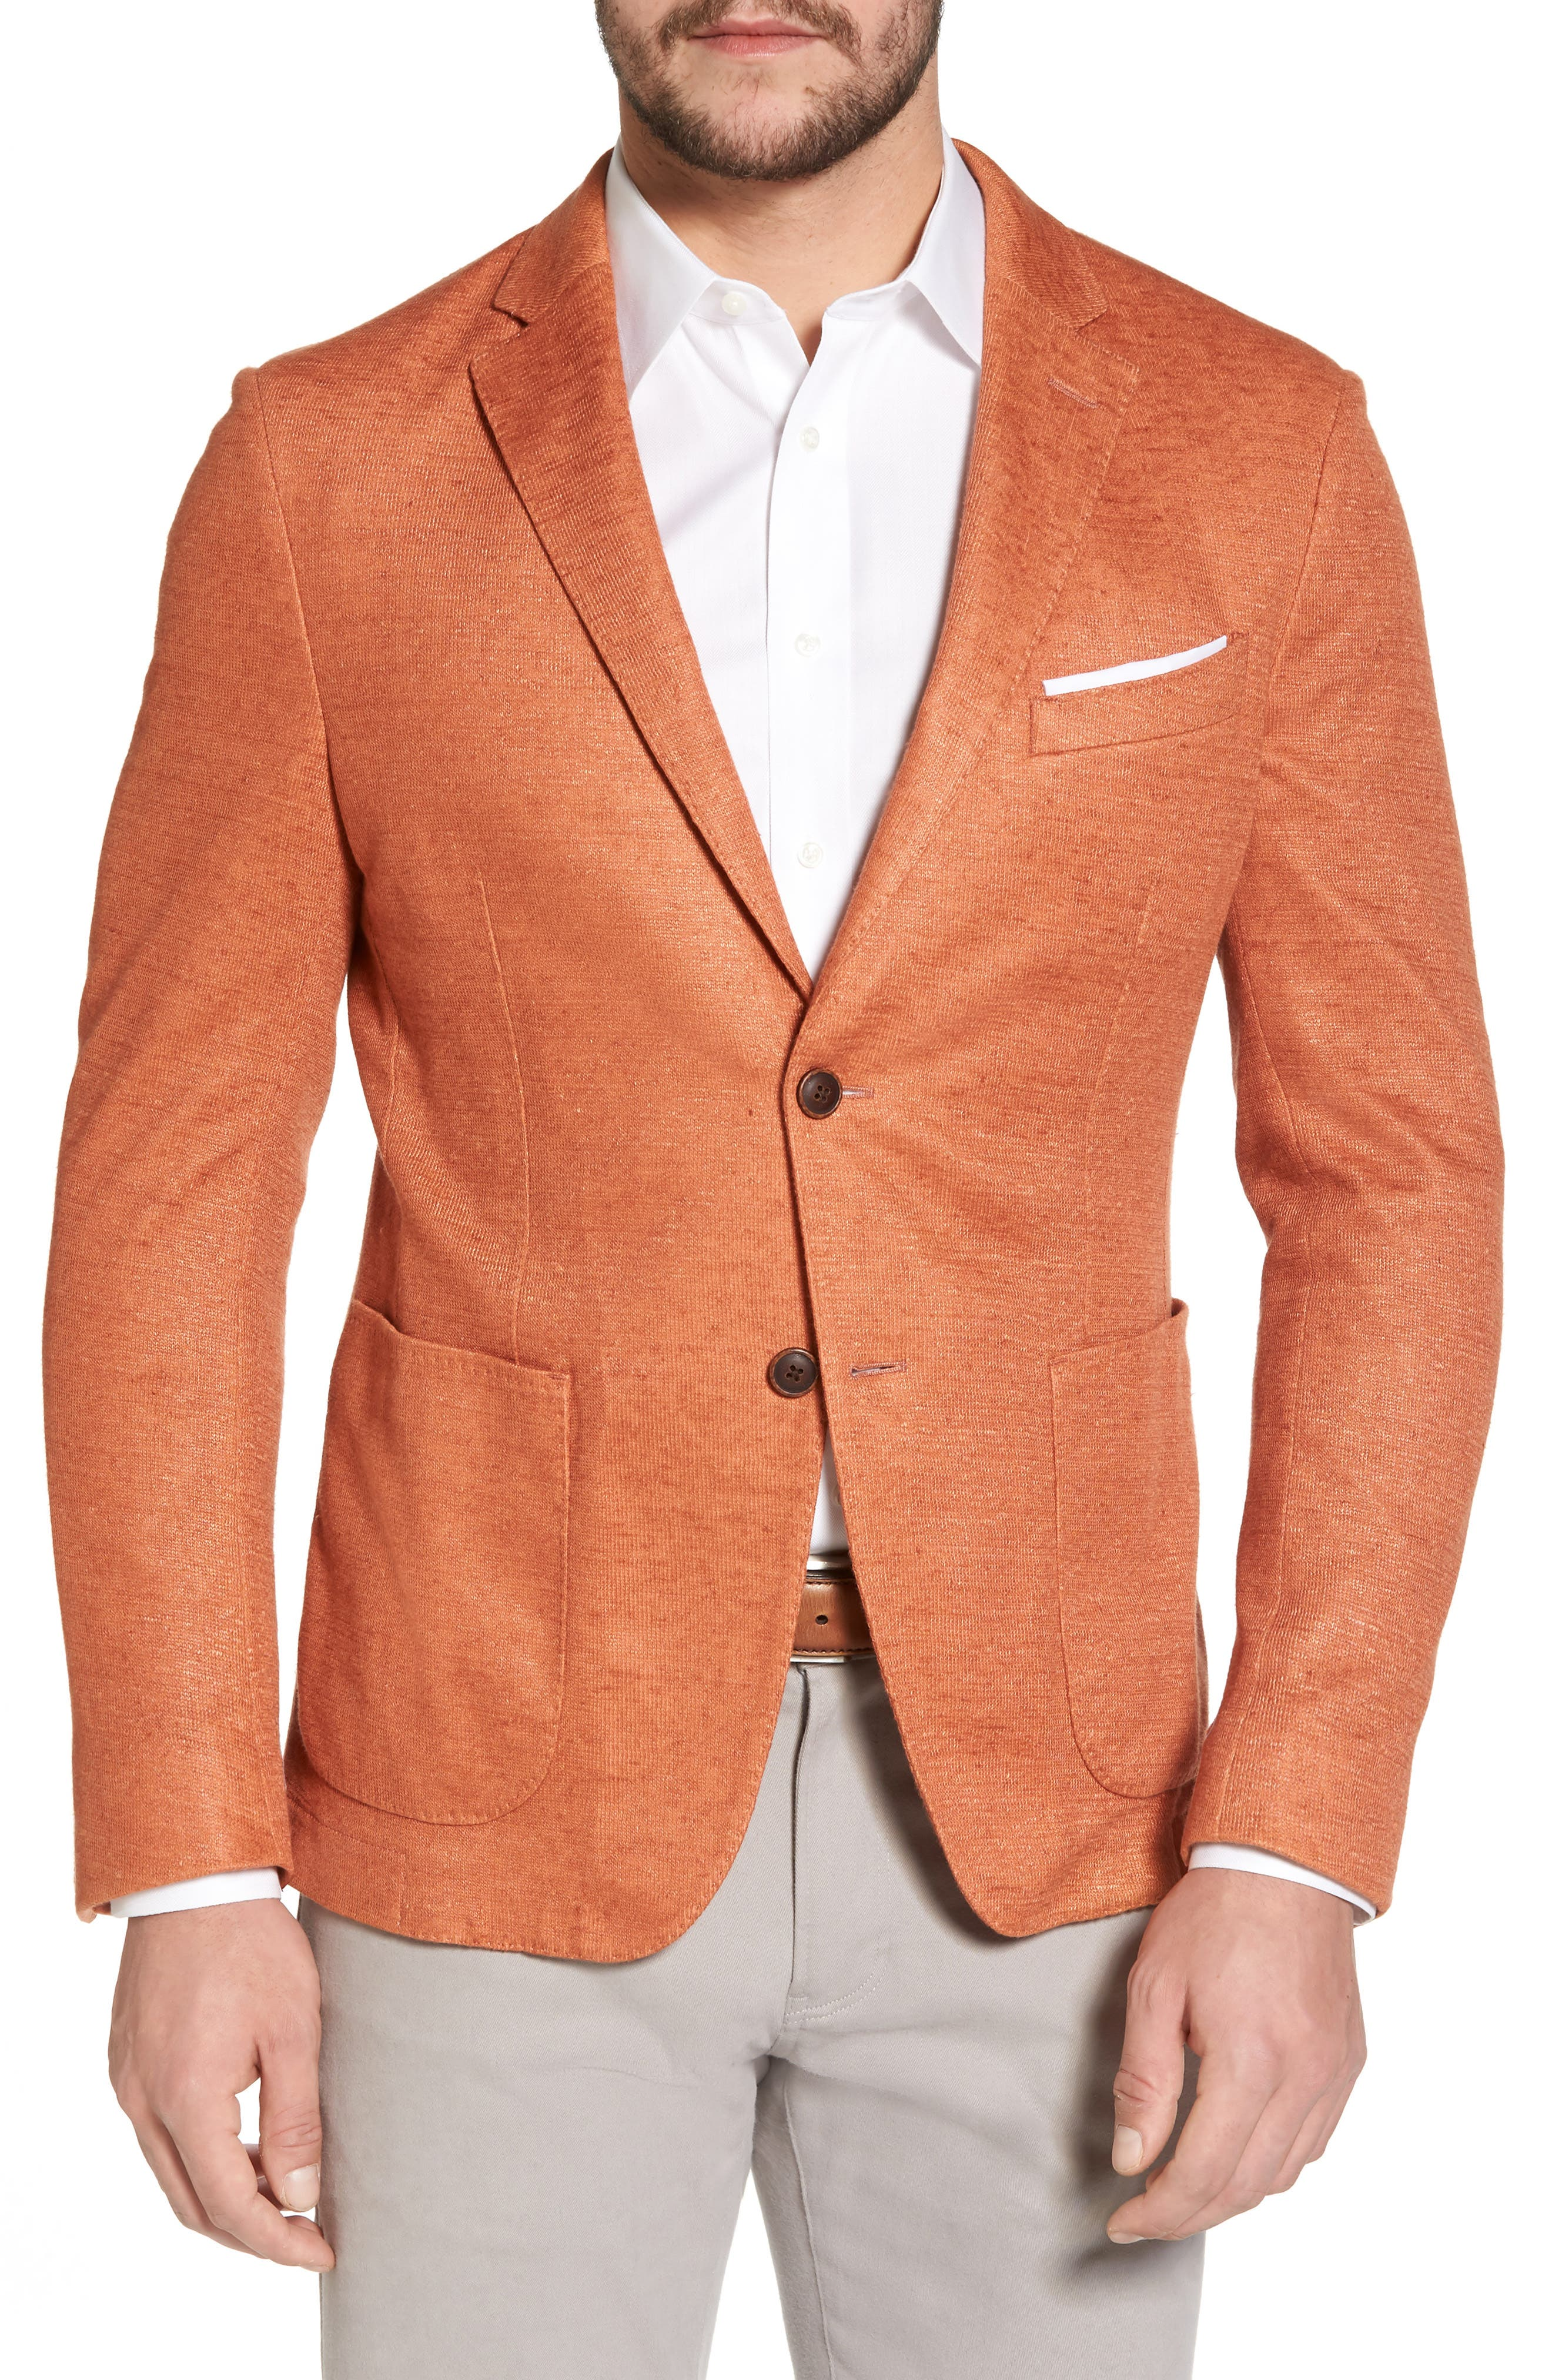 Trim Fit Heathered Jersey Blazer,                             Main thumbnail 1, color,                             Orange